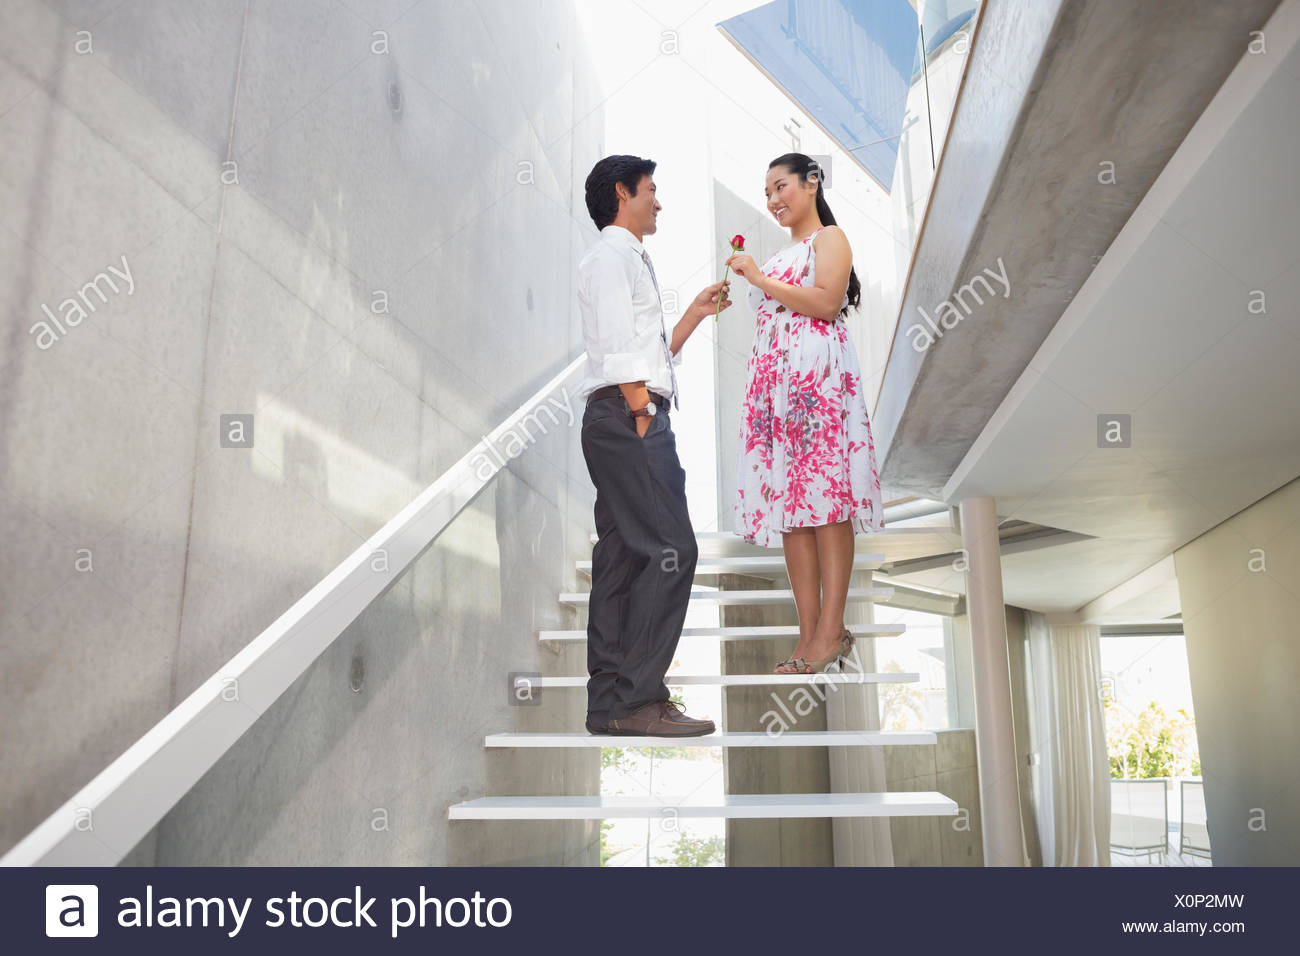 Man offering a red rose to girlfriend - Stock Image